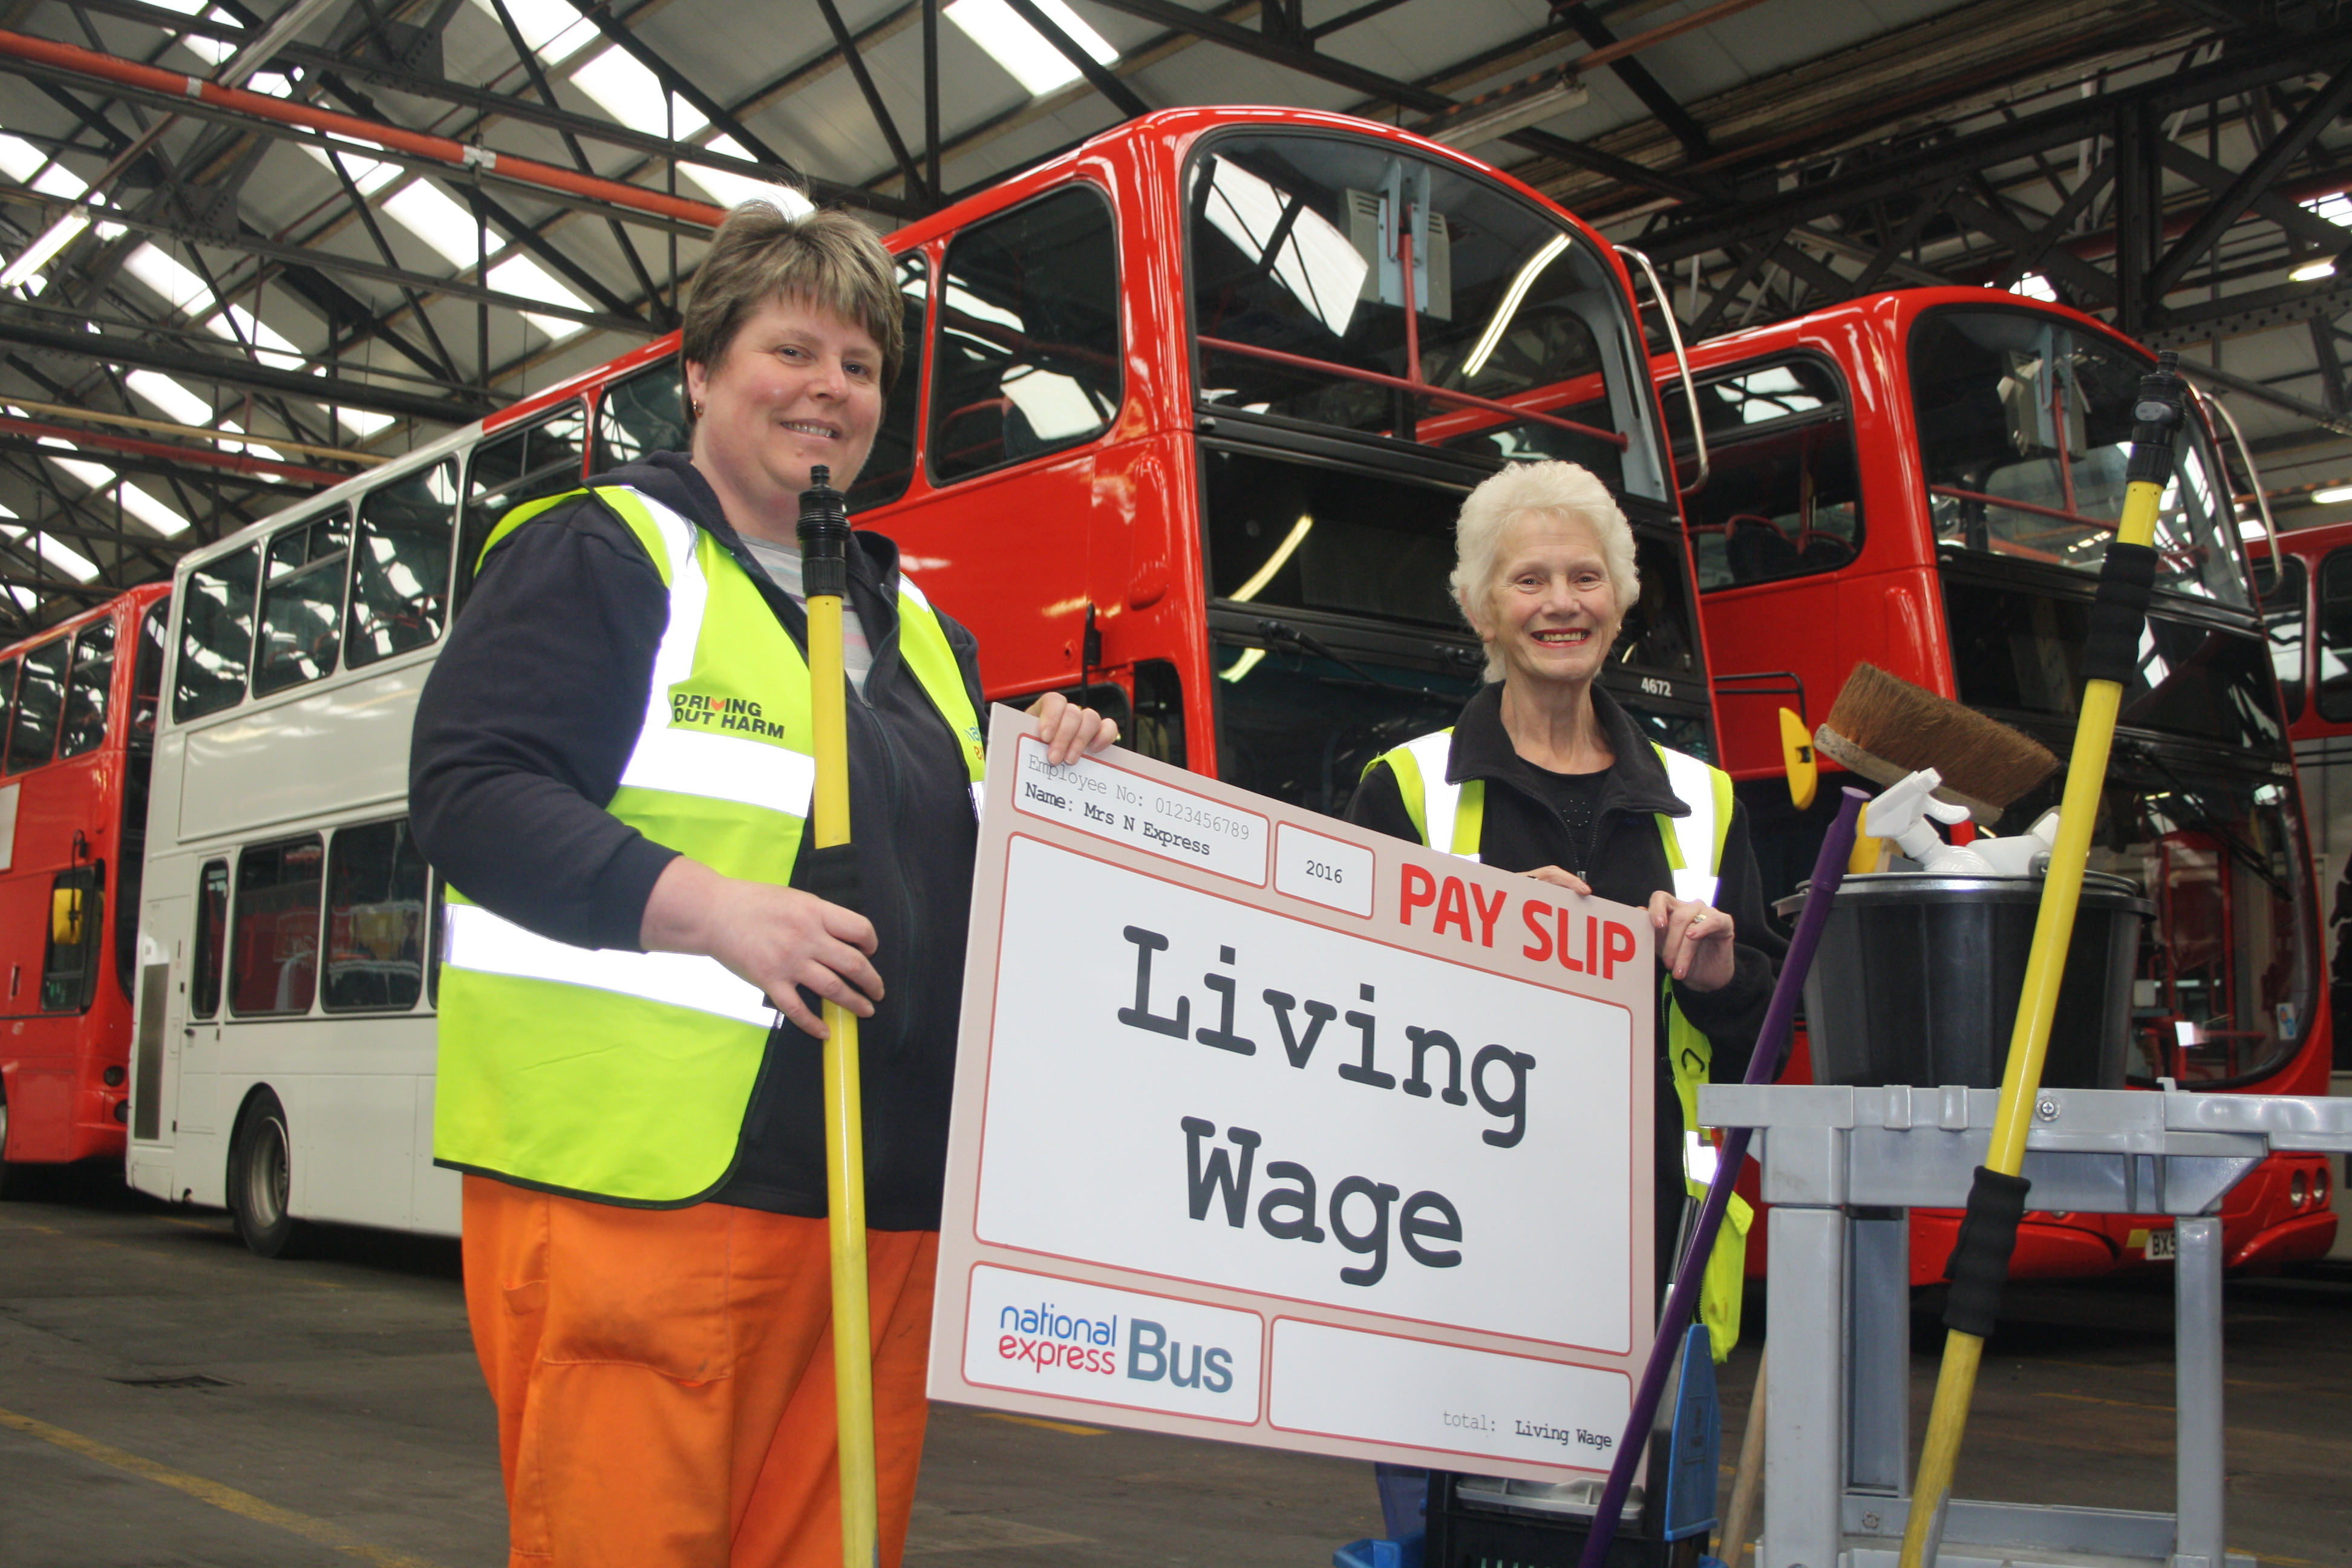 Living Wage cleaners and payslip.JPG